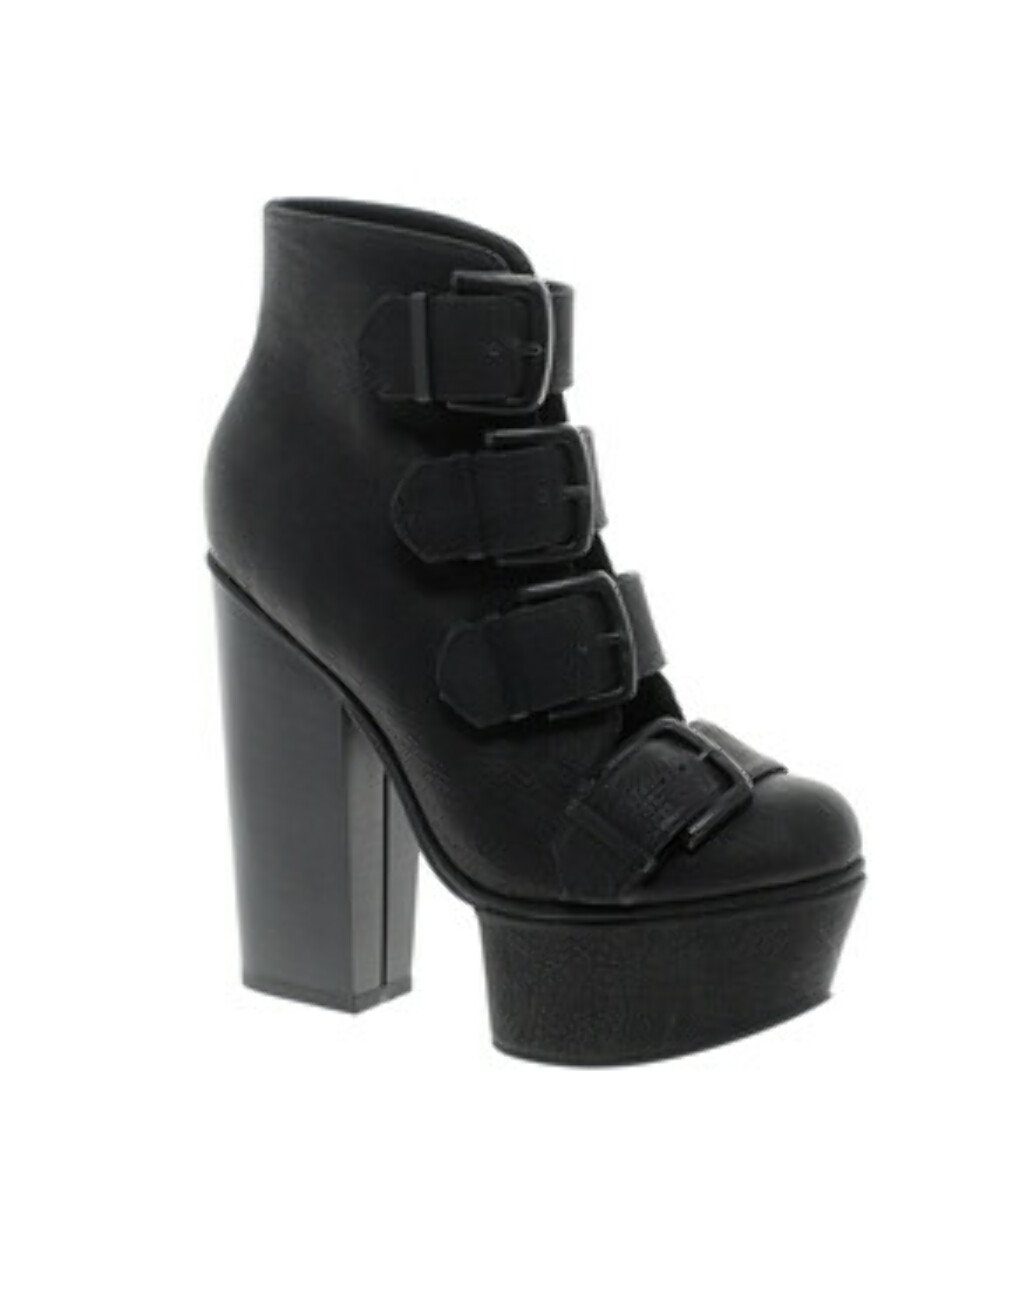 ASOS ALFONSO Ankle Boots